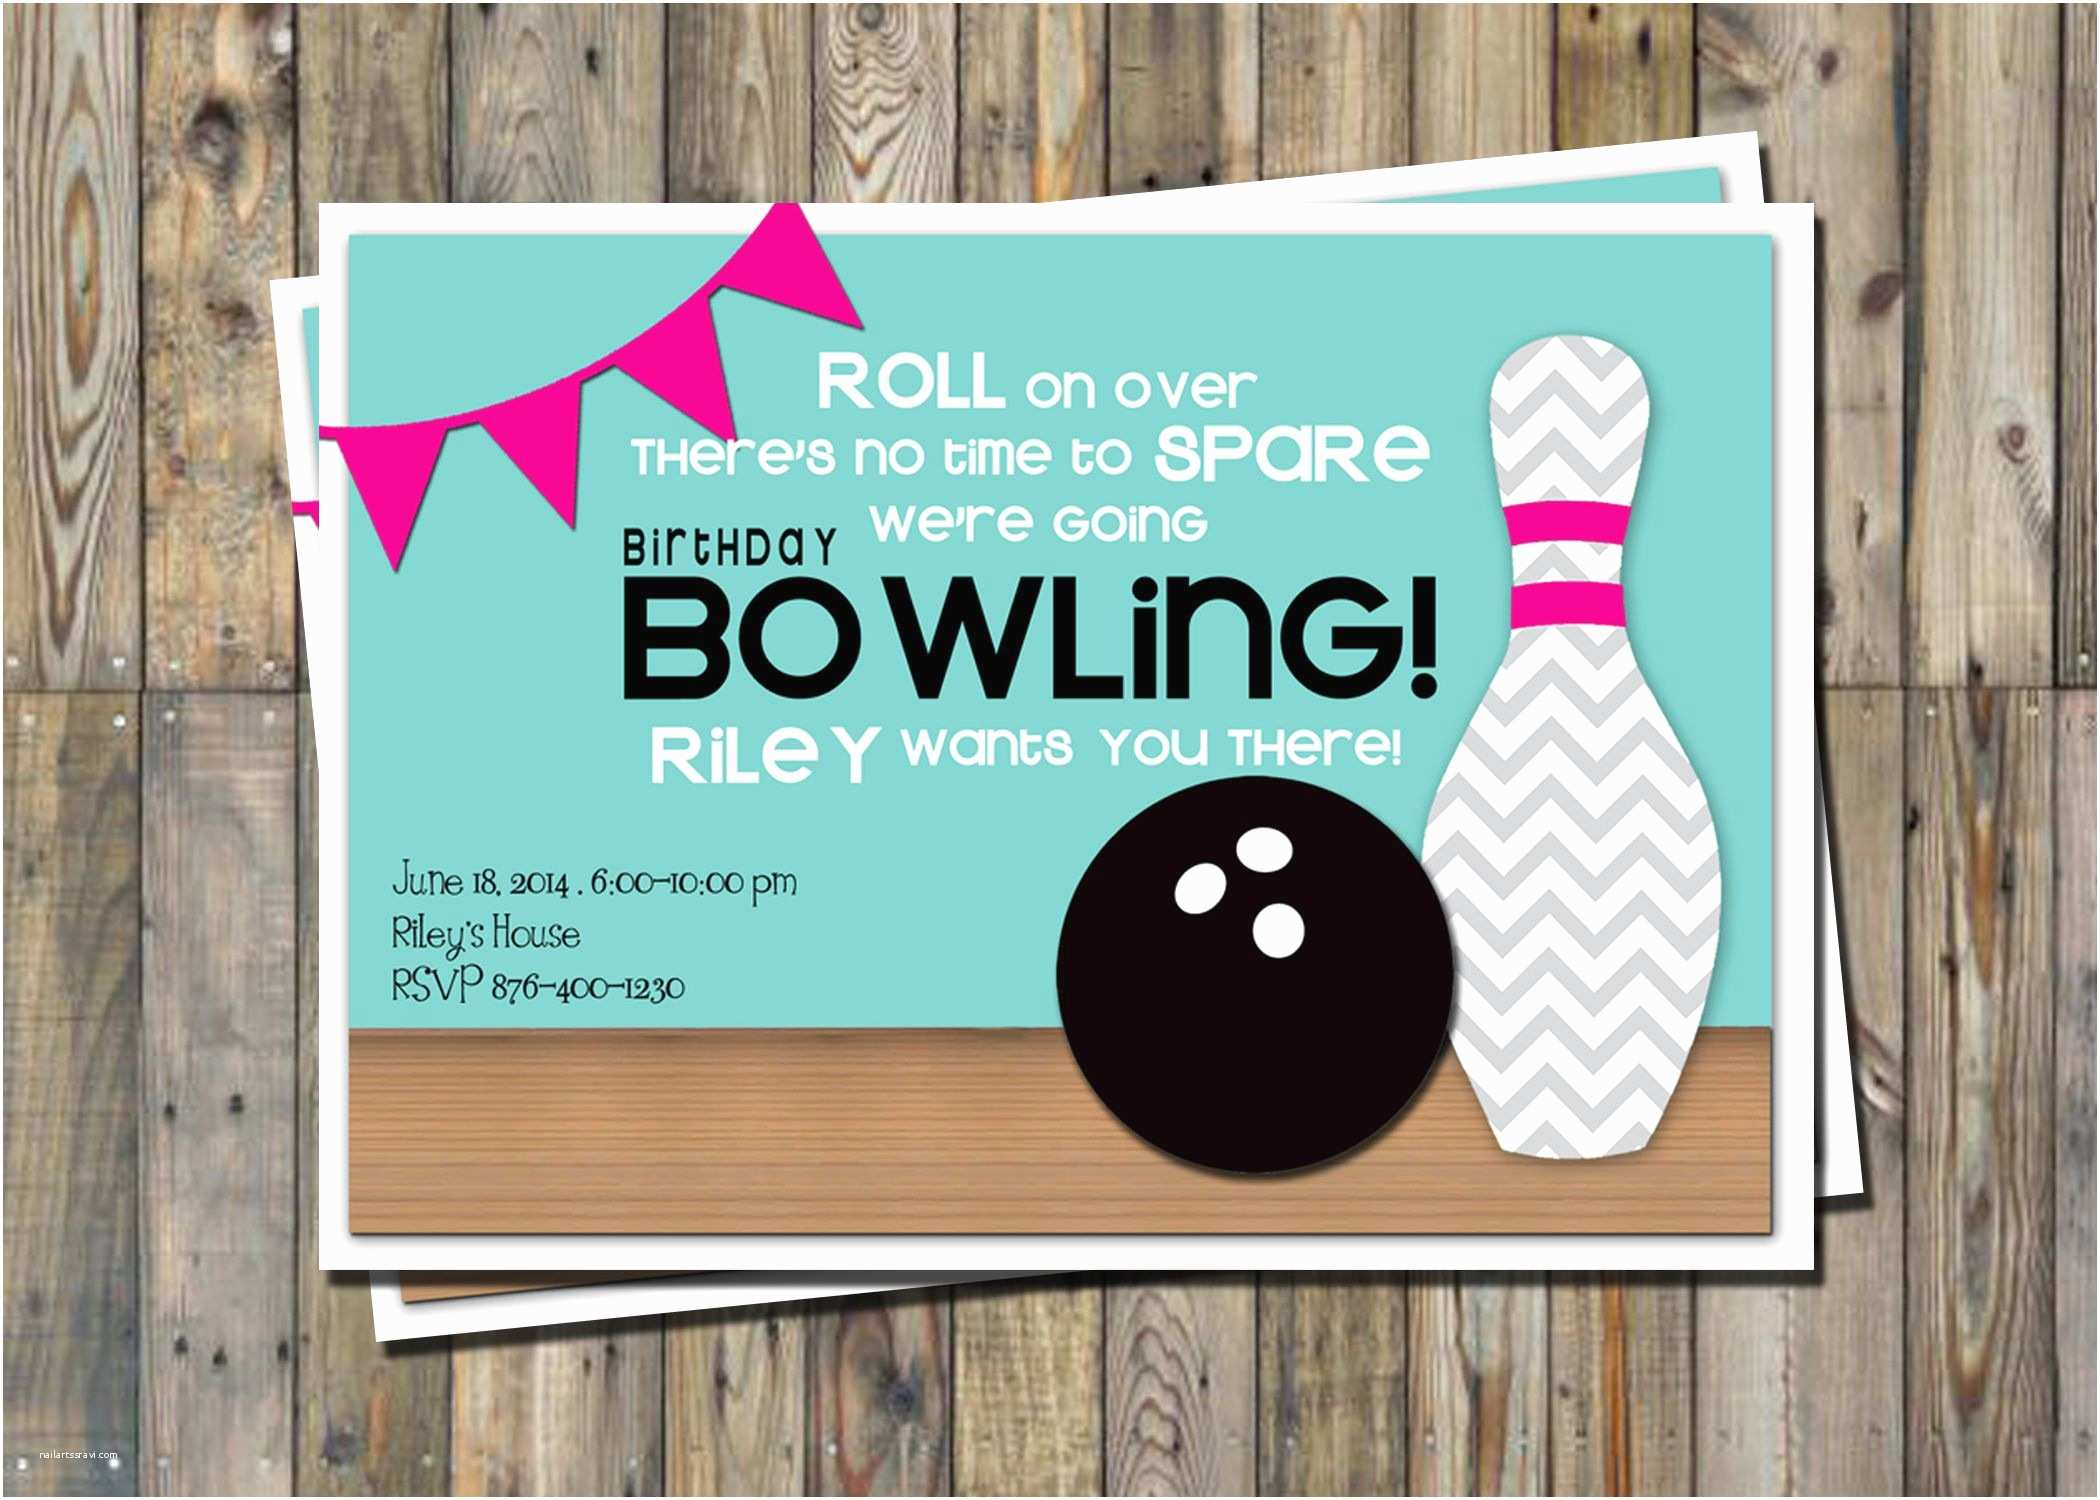 Bowling Birthday Party Invitations Cute Bowling Party Invitation Printable Party Pack From Pretty Perfect Party Ideas